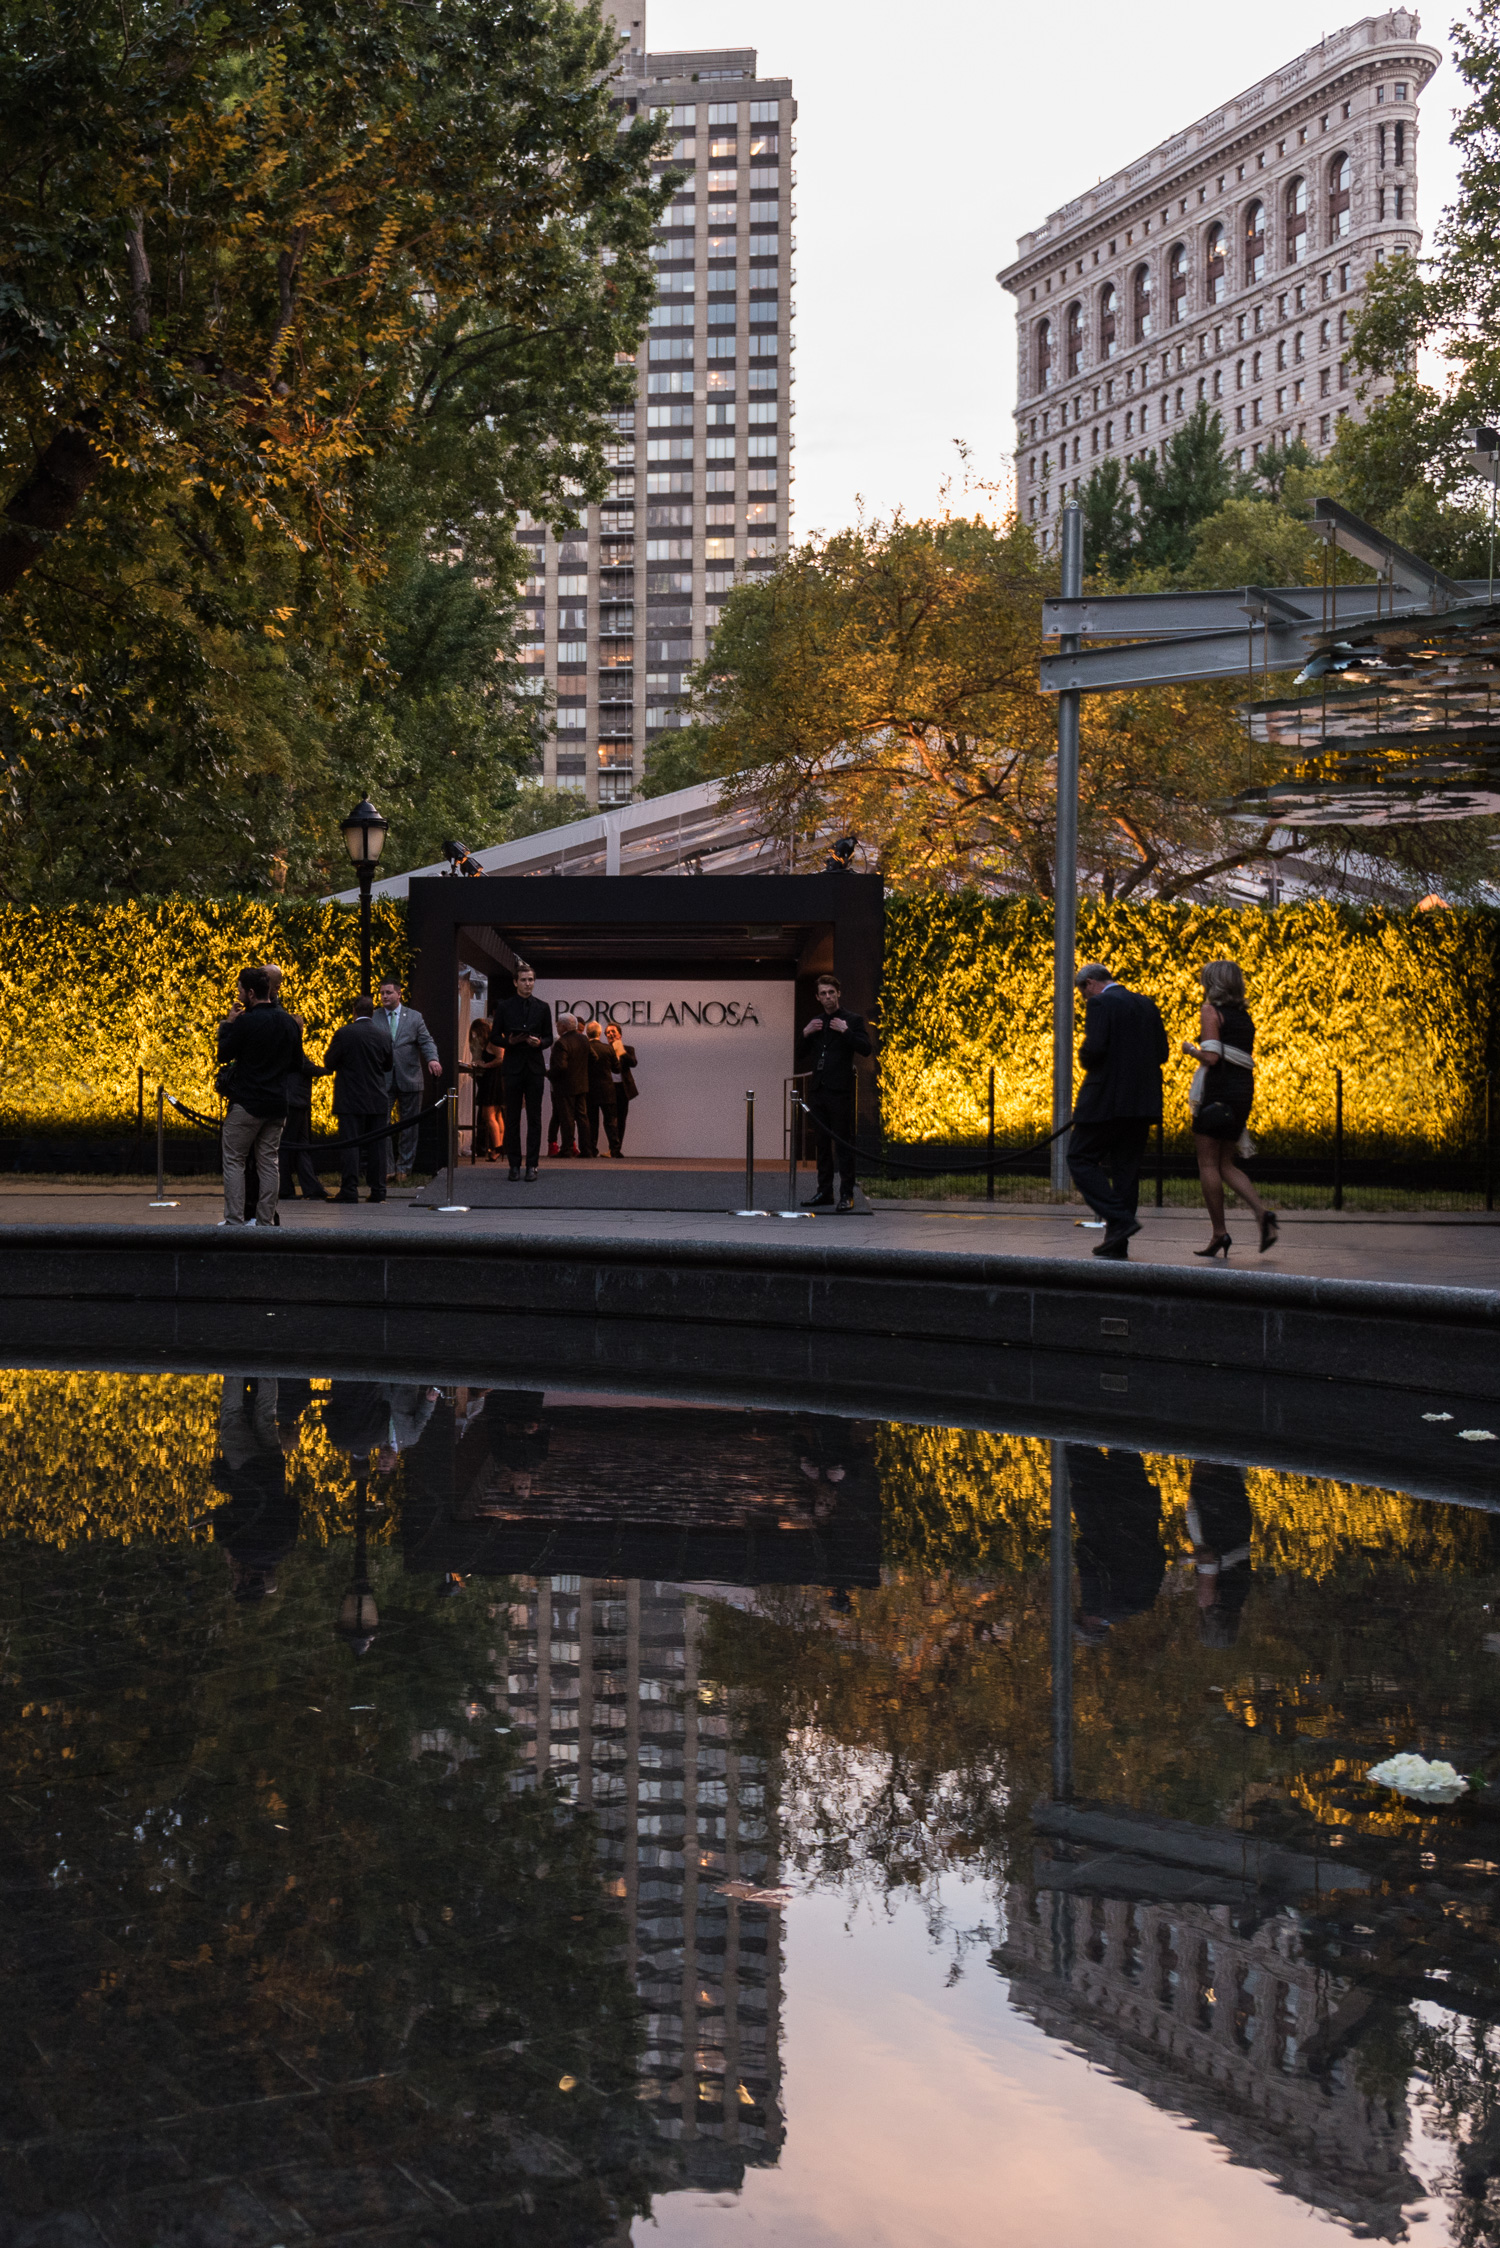 Porcelanosa NYC Opening Event, Madison Square Park main entrance looking South toward the Flat Iron Building. © harlan erskine 2015.